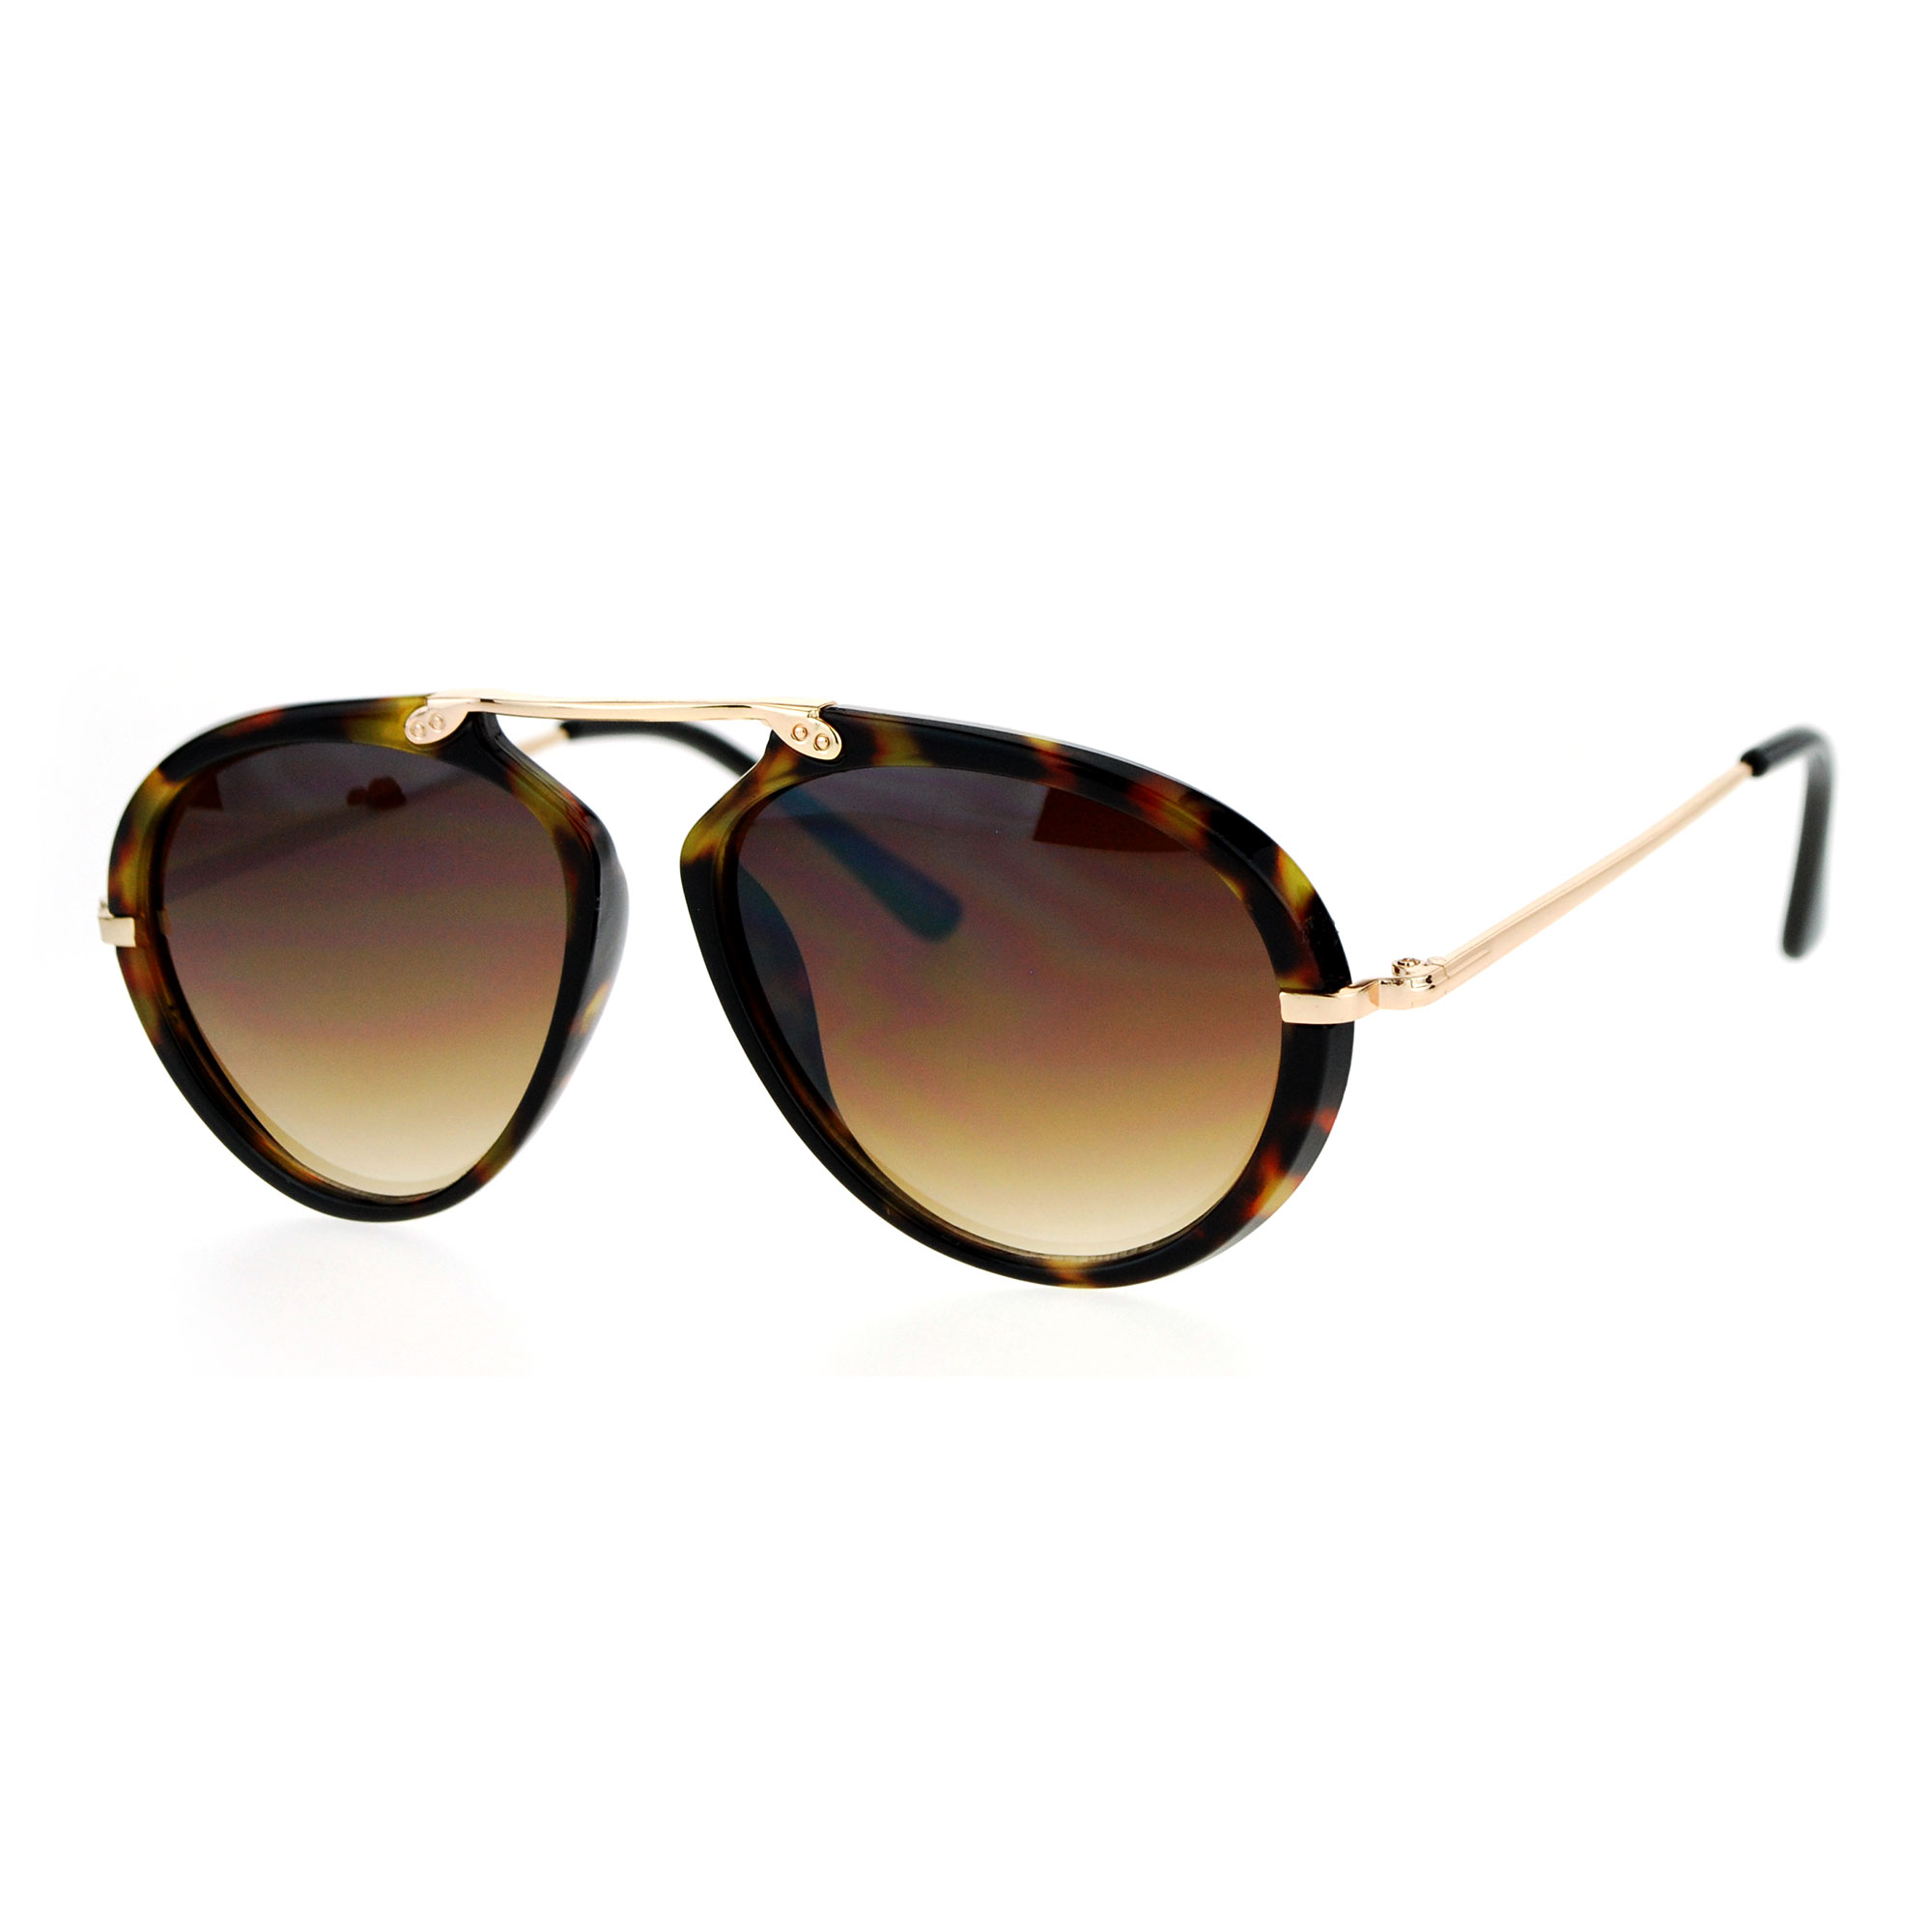 Flat Top Aviator Sunglasses  sa106 retro flat top bridge racer plastic aviator sunglasses ebay